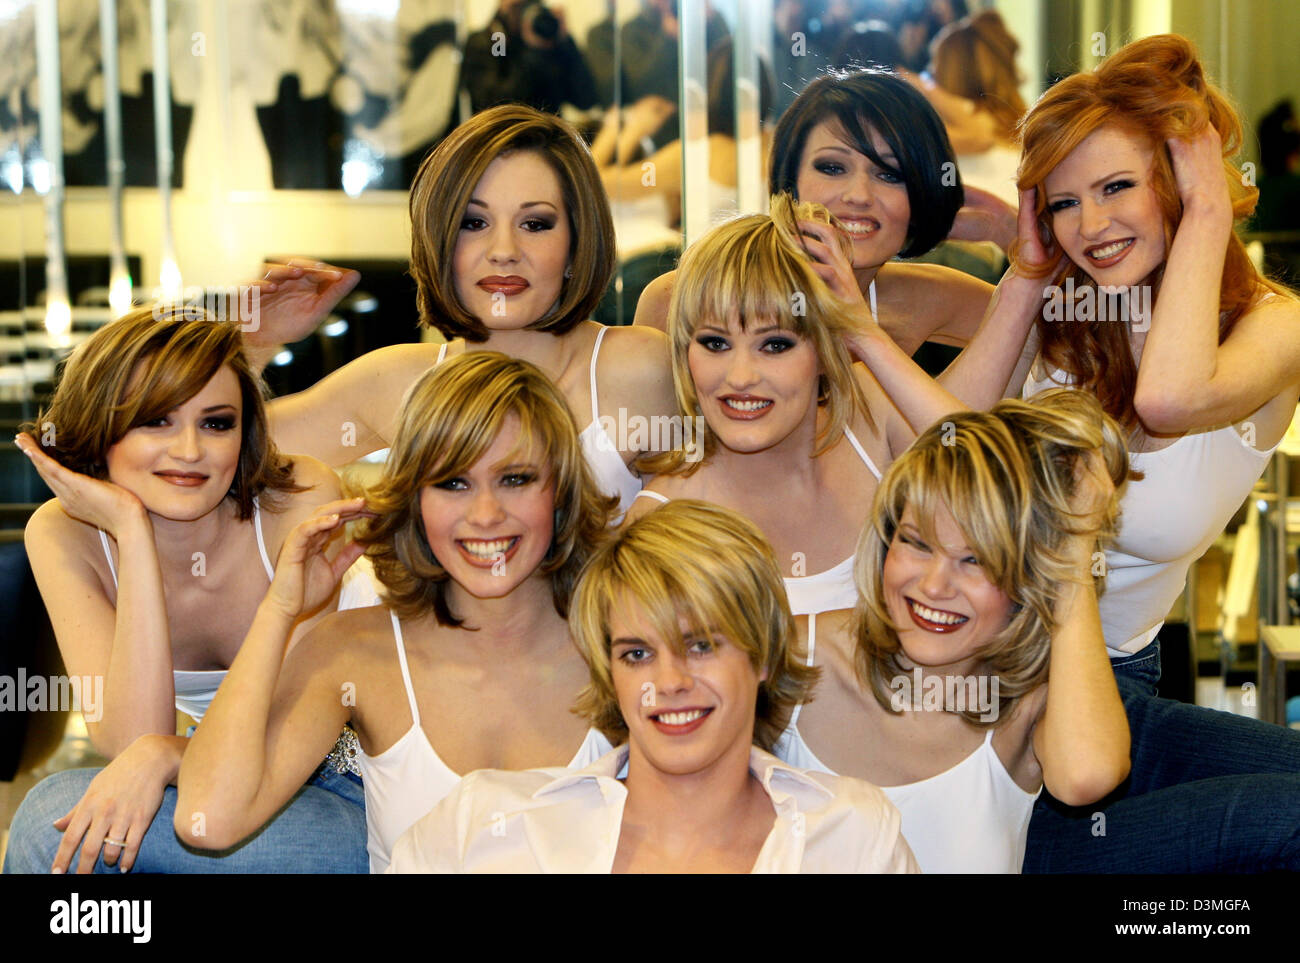 Models Present The Newest Hairstyles At A Photocall For The Trade